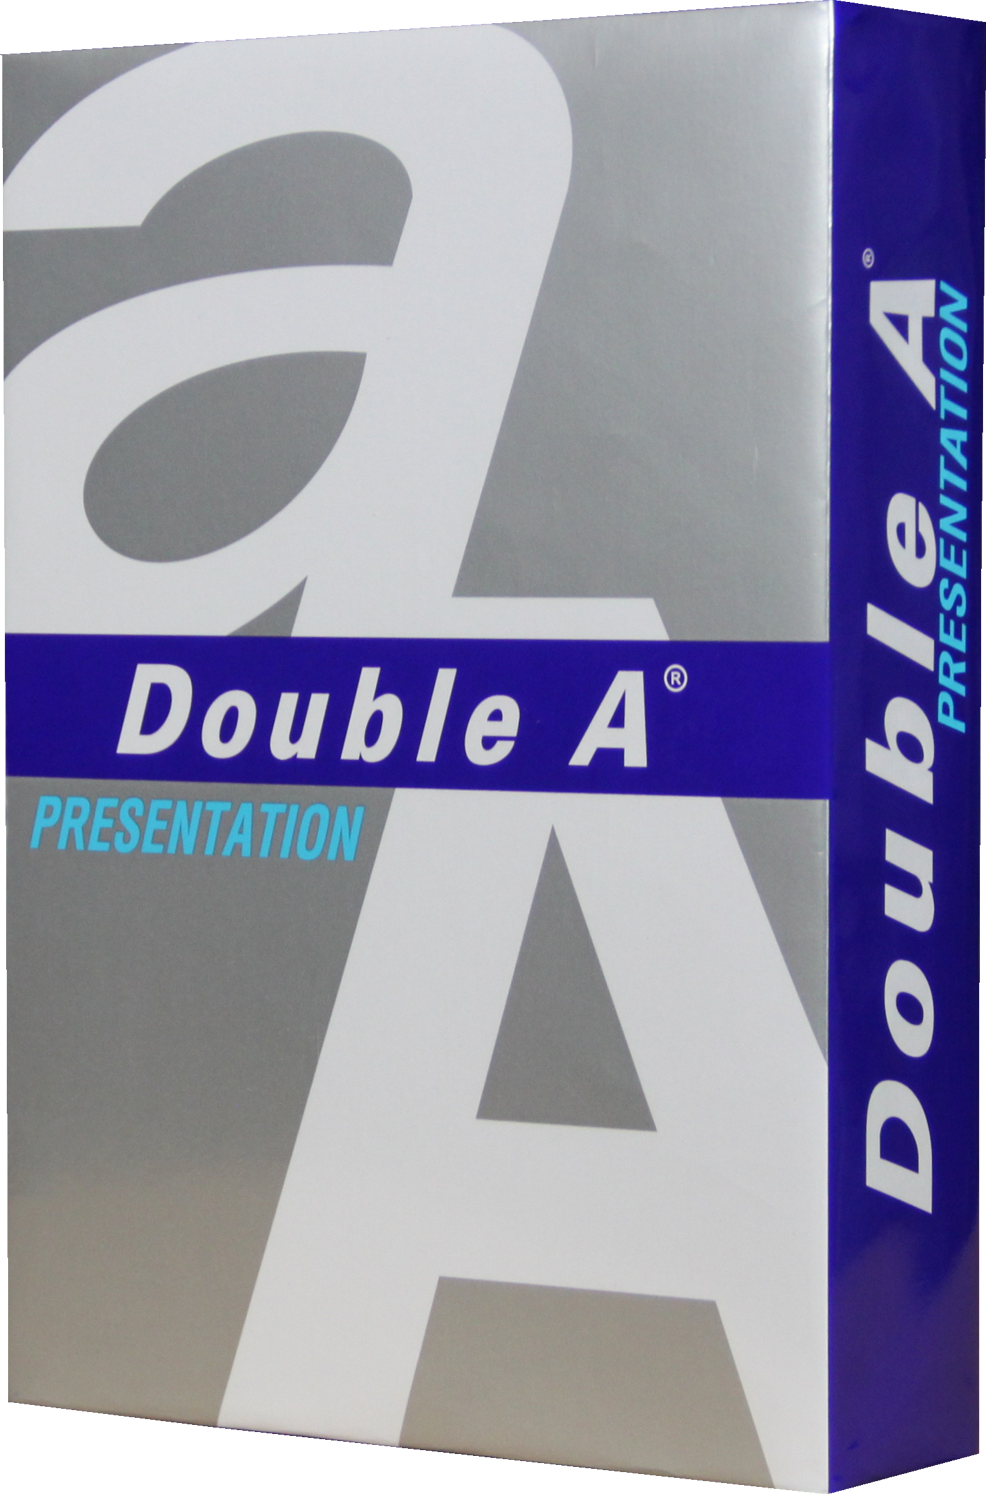 Double A Presentation A4 Papier 1 pak (100 grams) wit